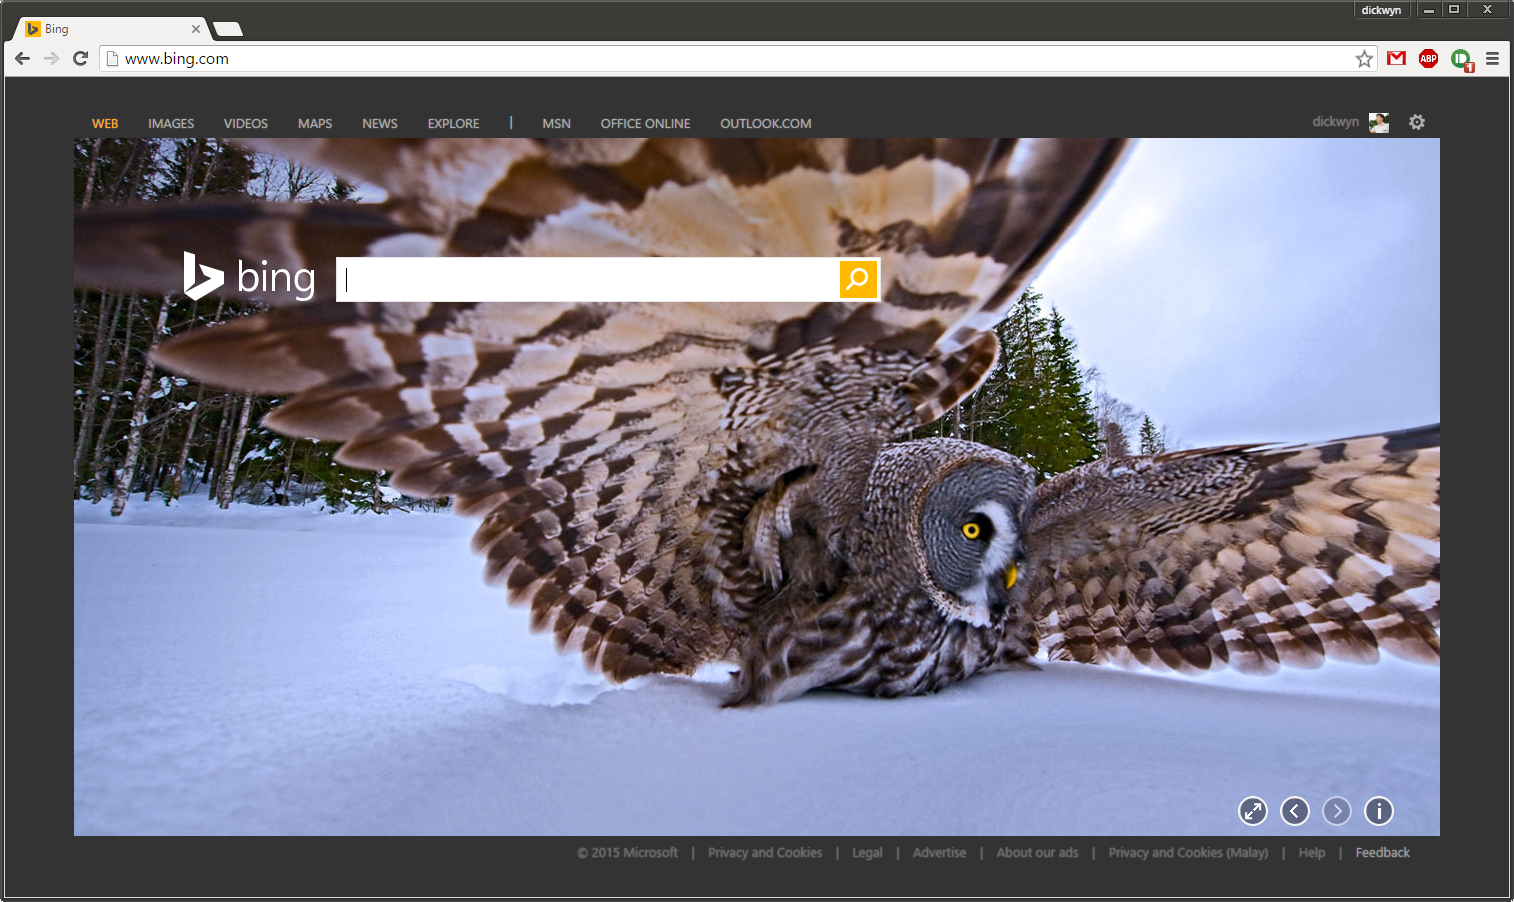 bing-homepage-microsoft-account